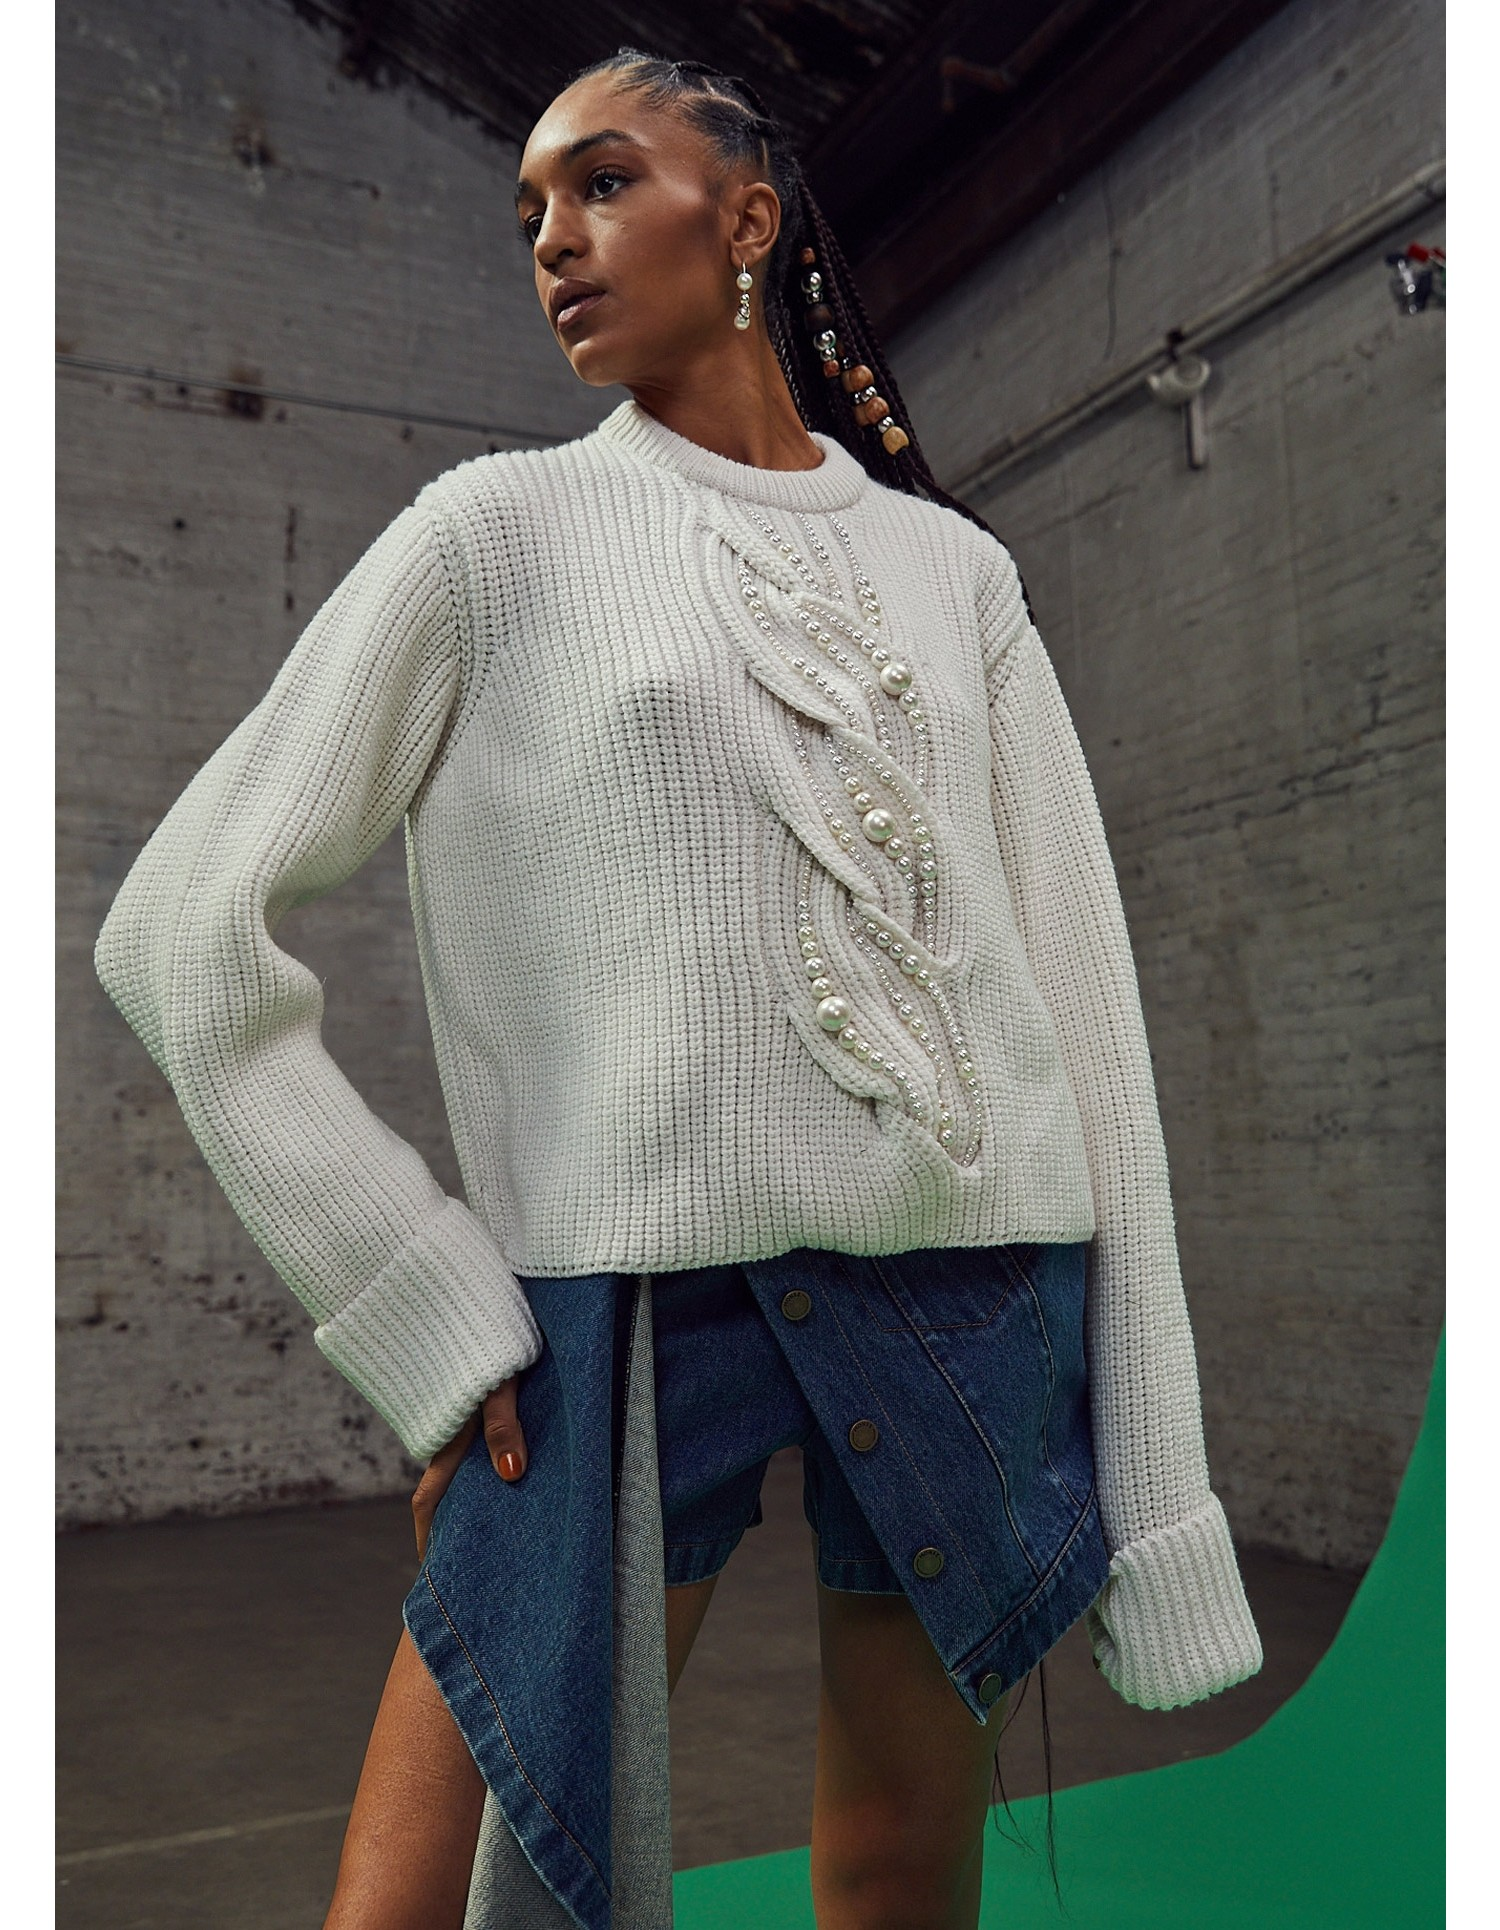 MONSE Pearl Cable Sweater in Ivory on Model Front Detail View